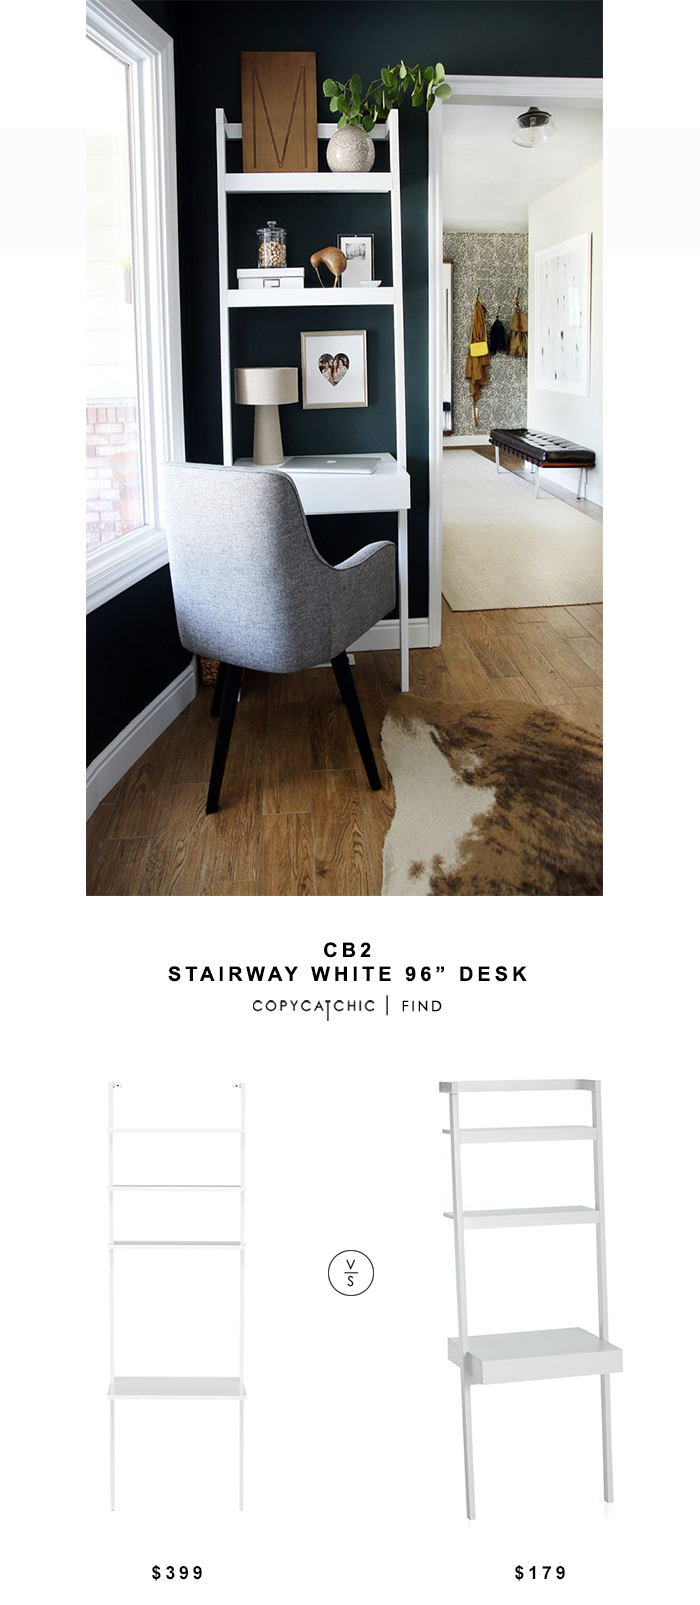 Cb2 Stairway White Desk Copycatchic Leaning Desk White Desks Home